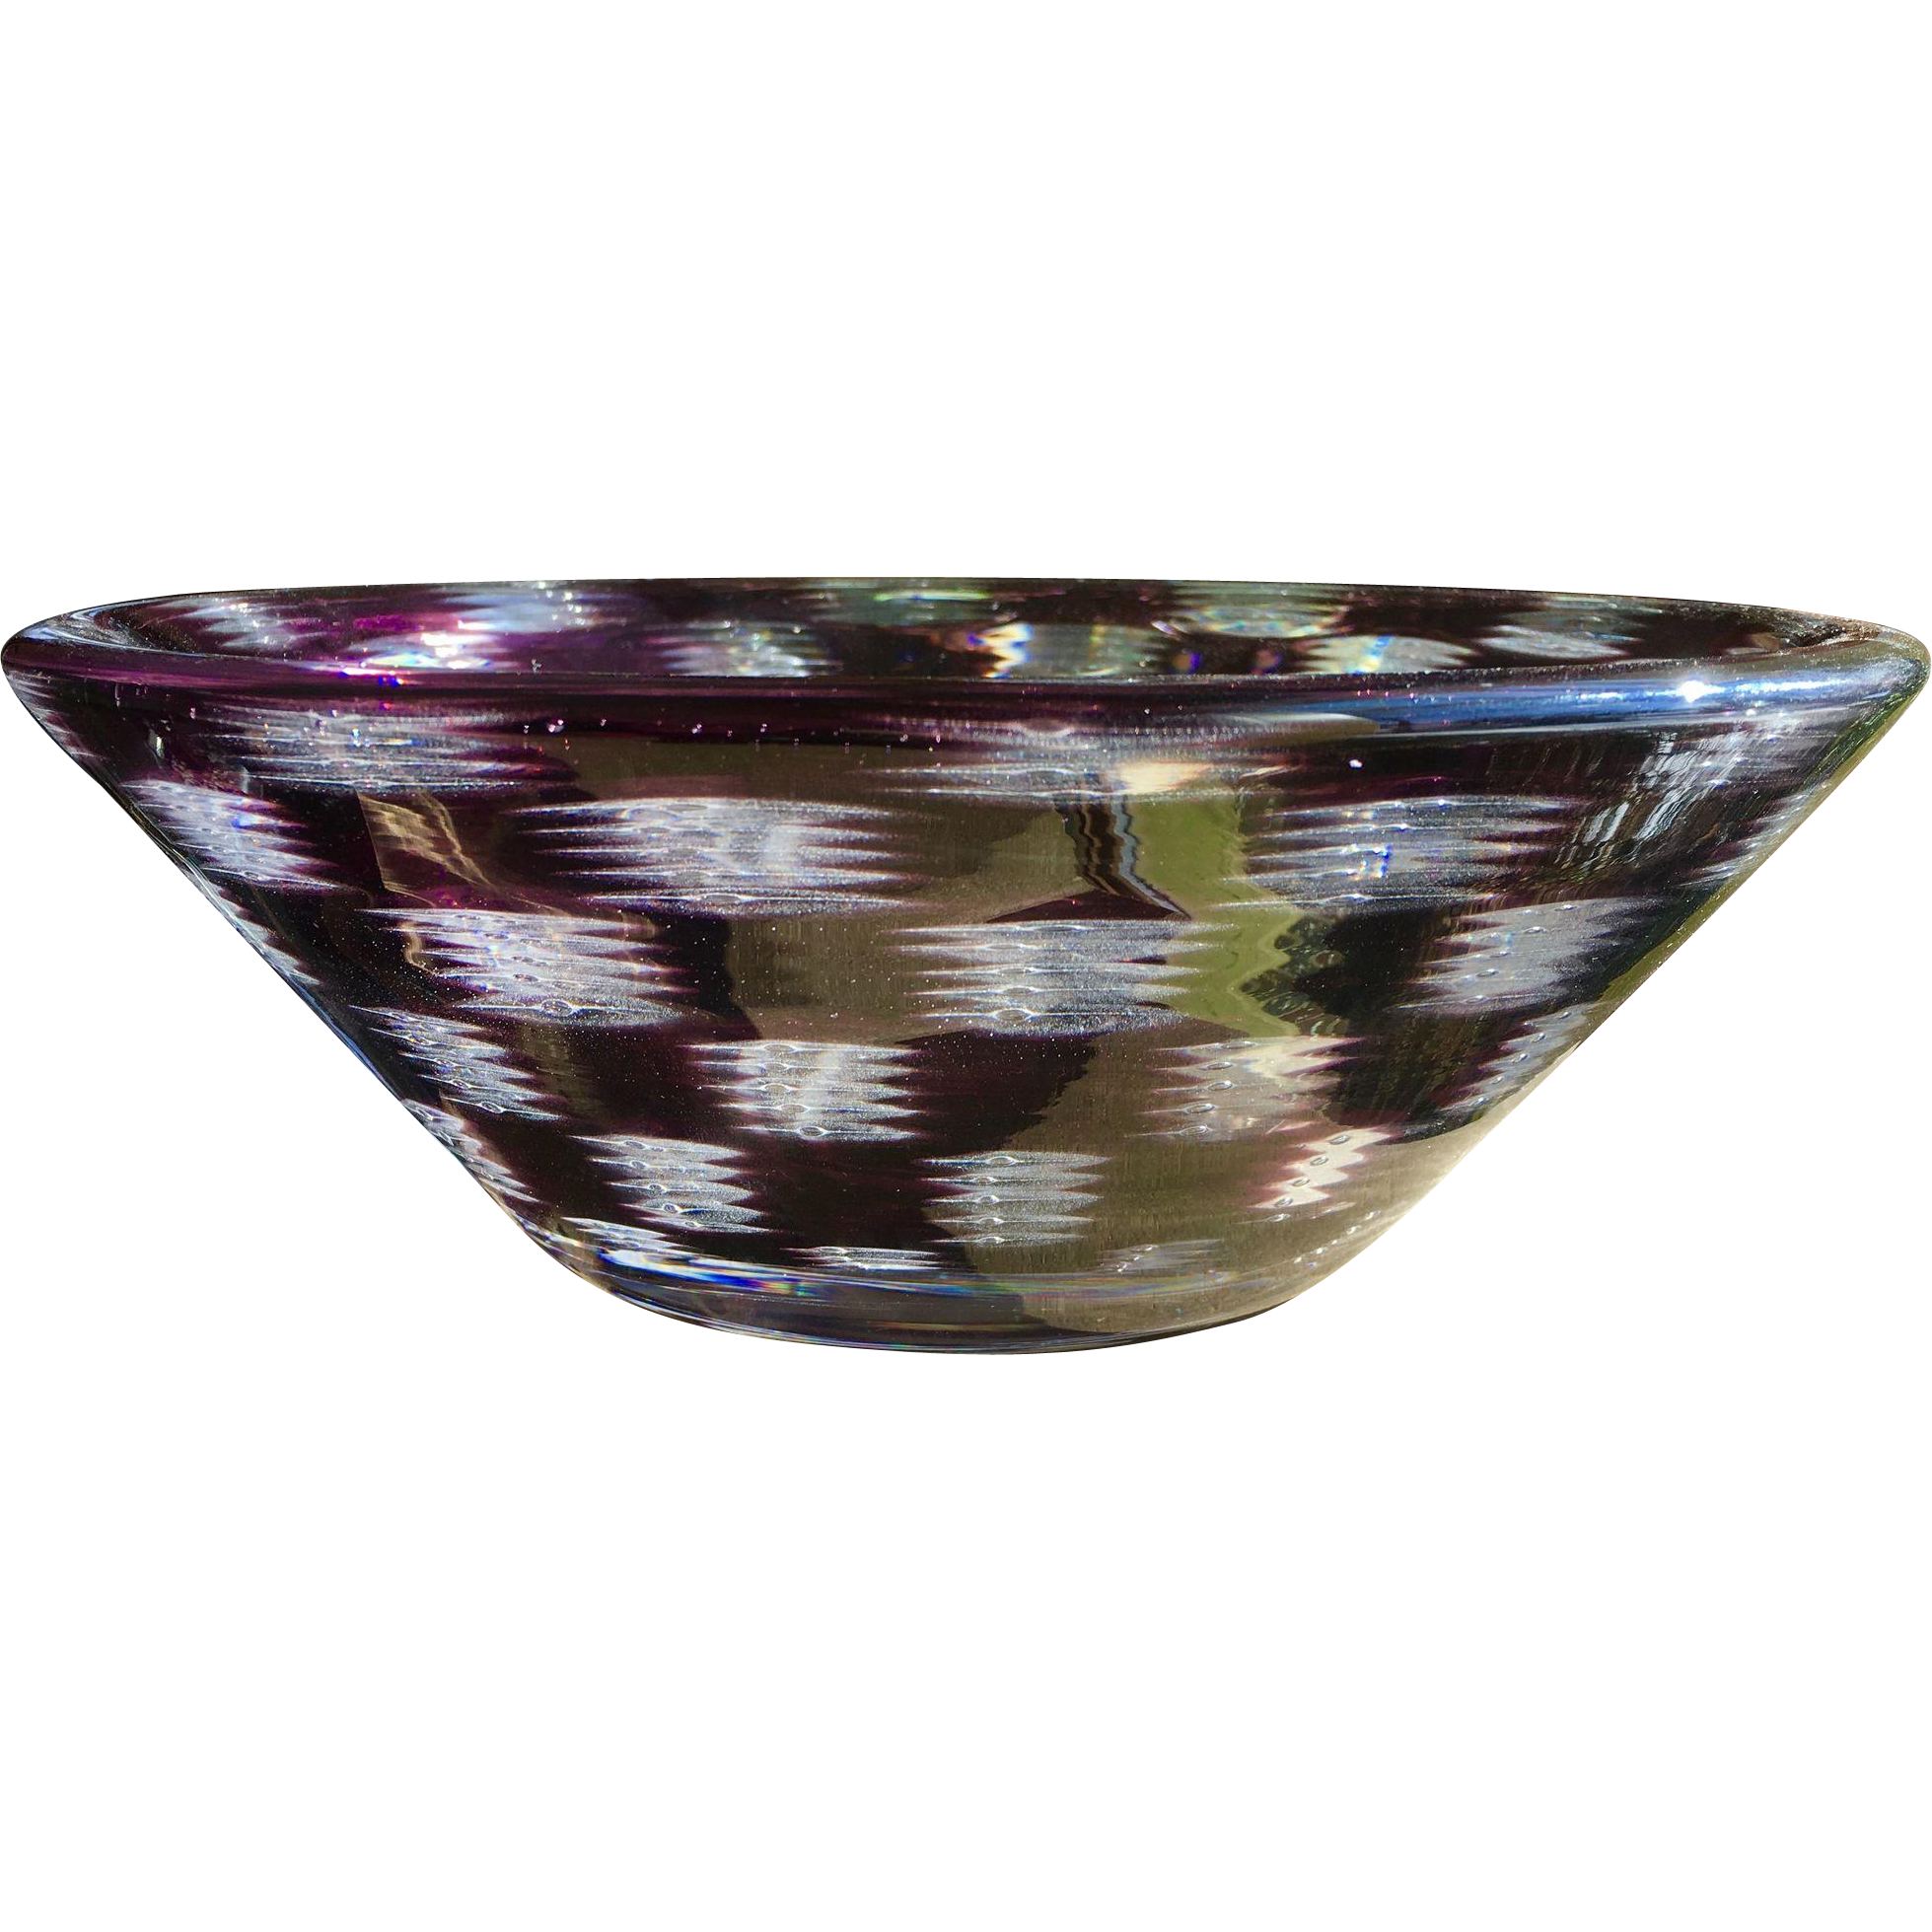 Bowl transparent tall glass. Here we have a